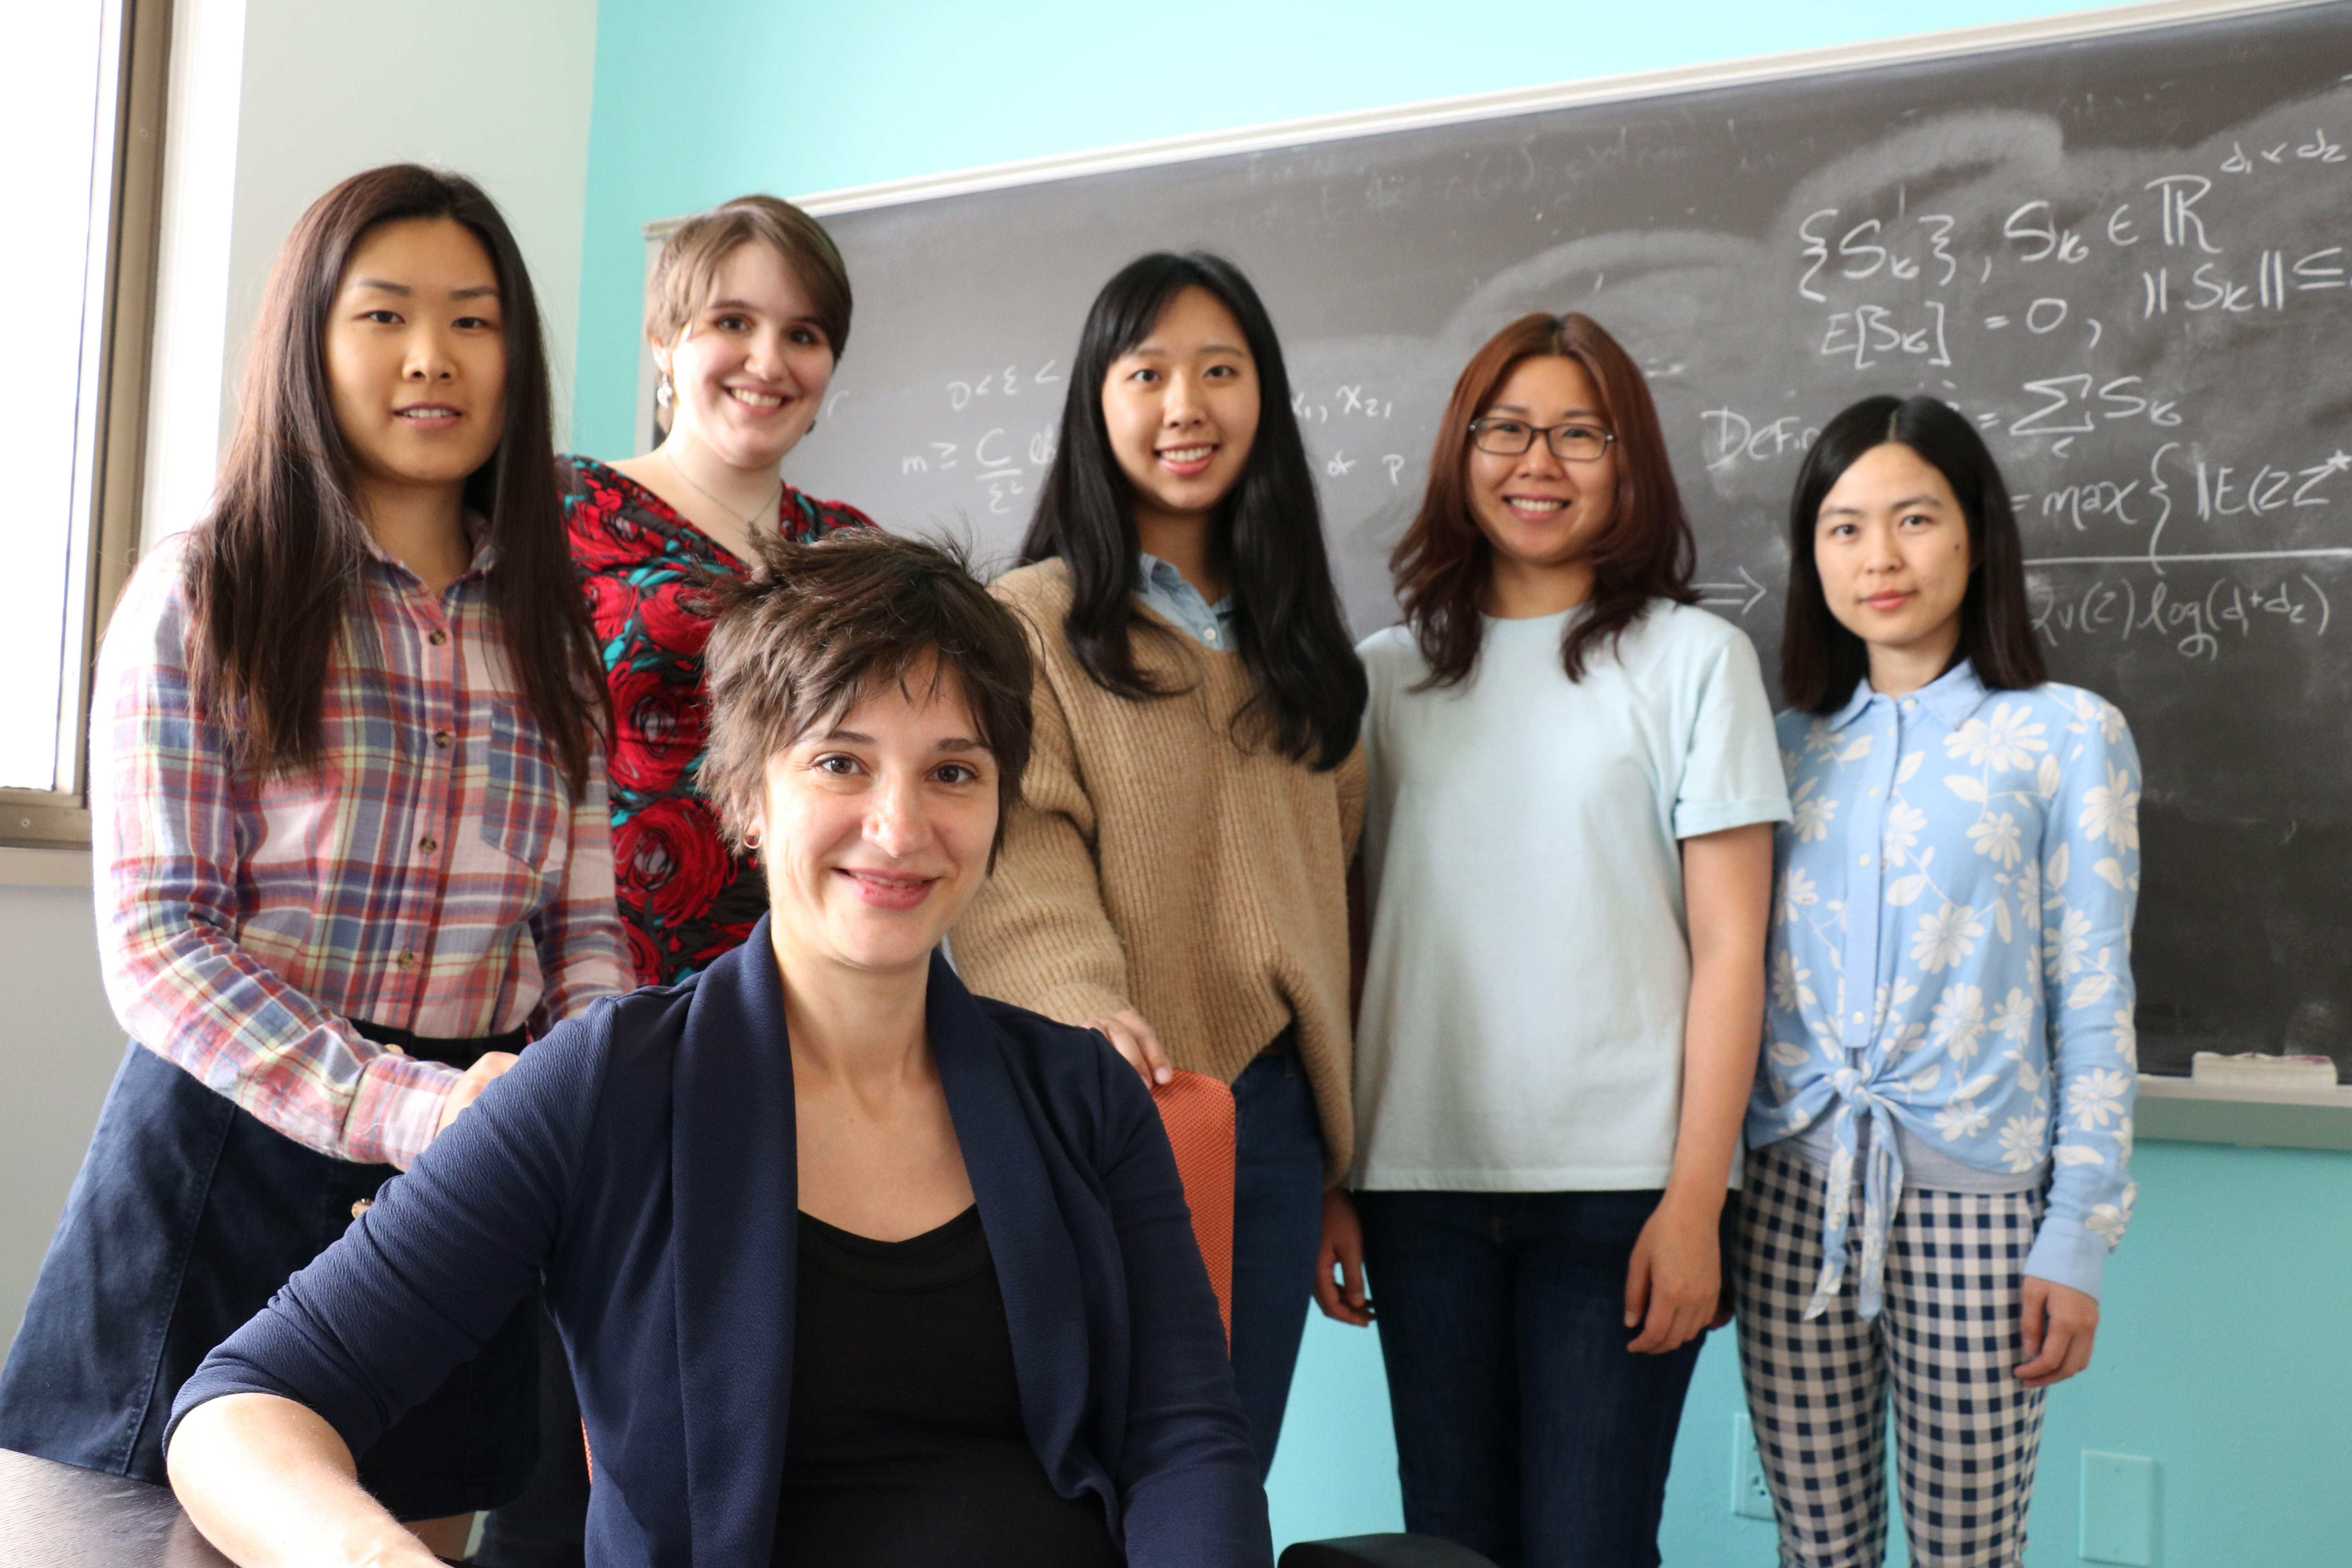 Professor Rachel Ward's research group